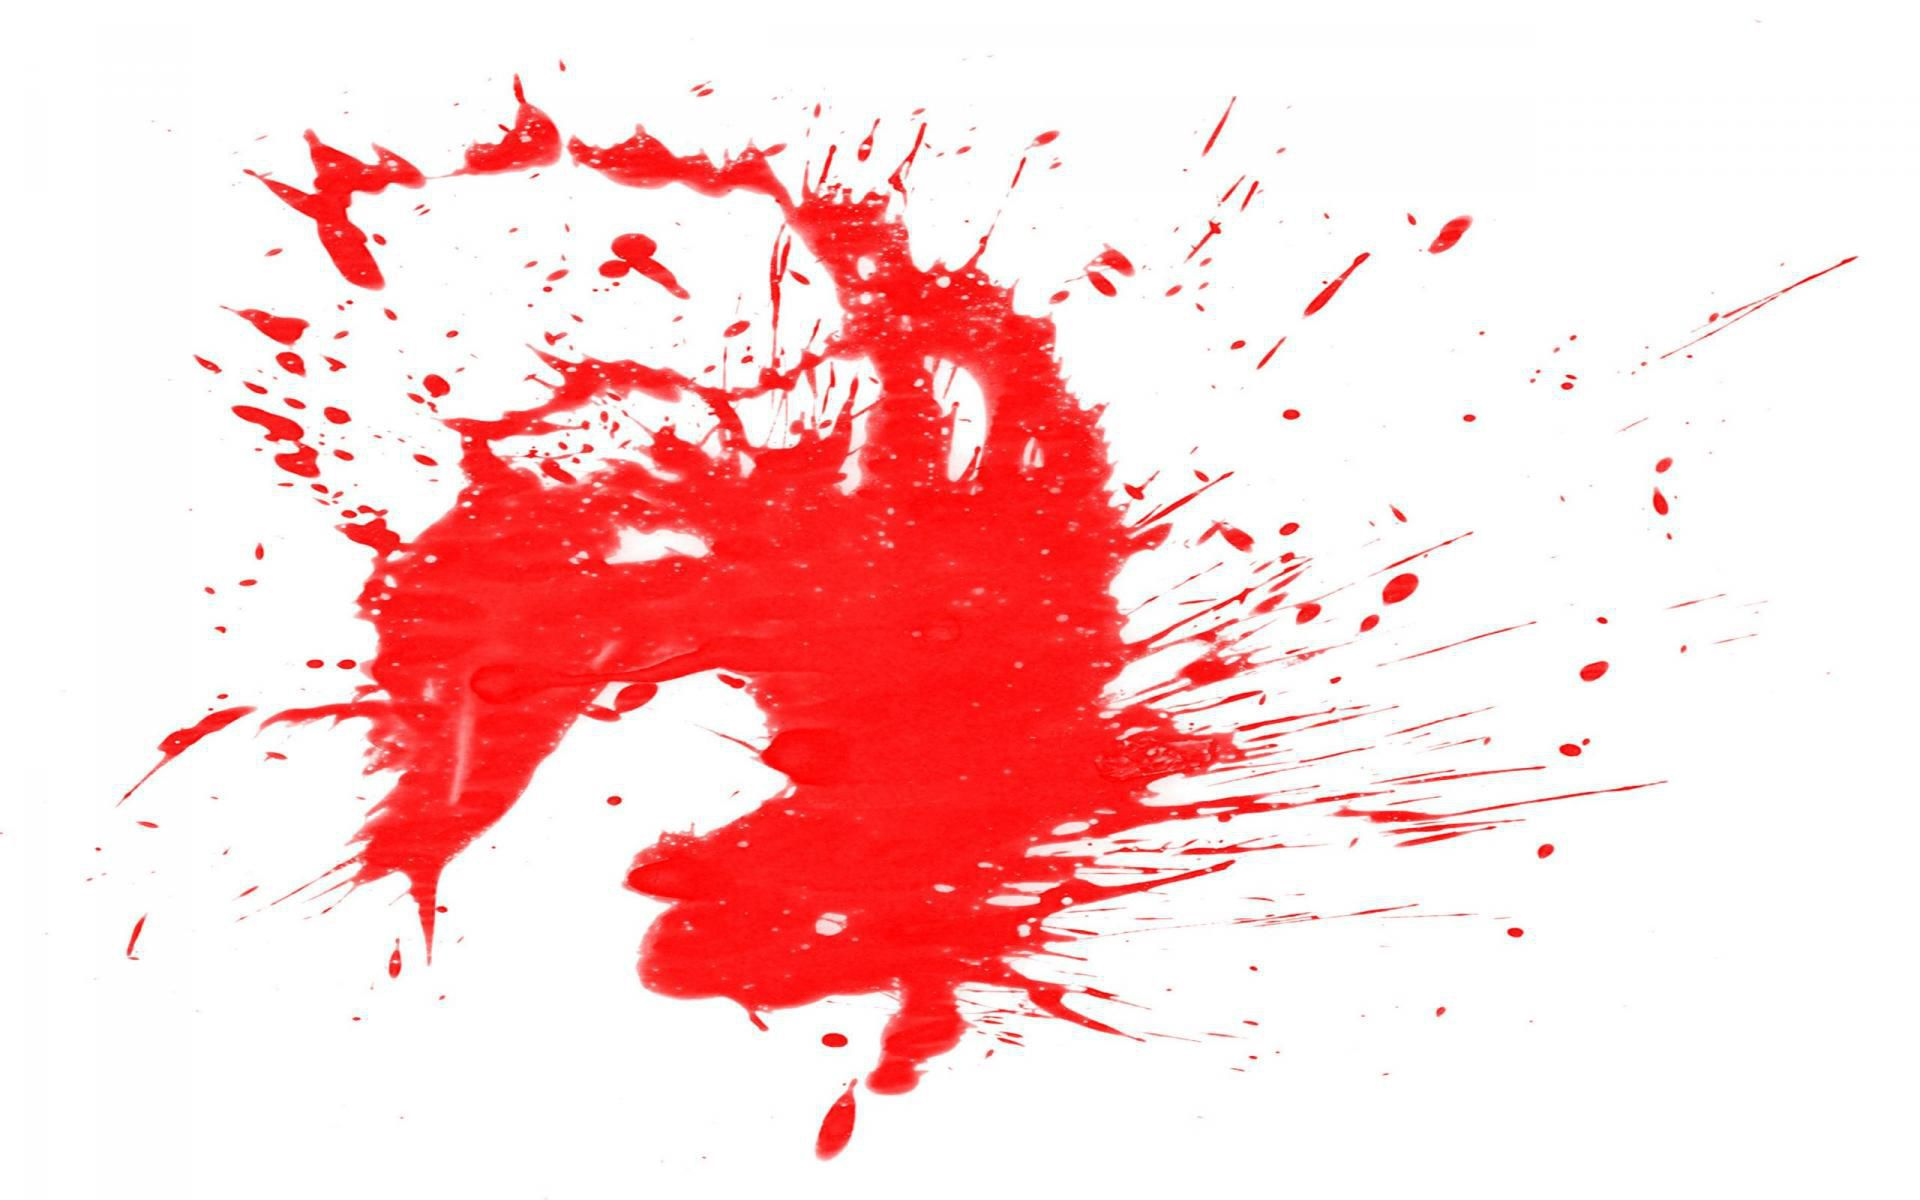 Blood Splatter by Yureilia on DeviantArt